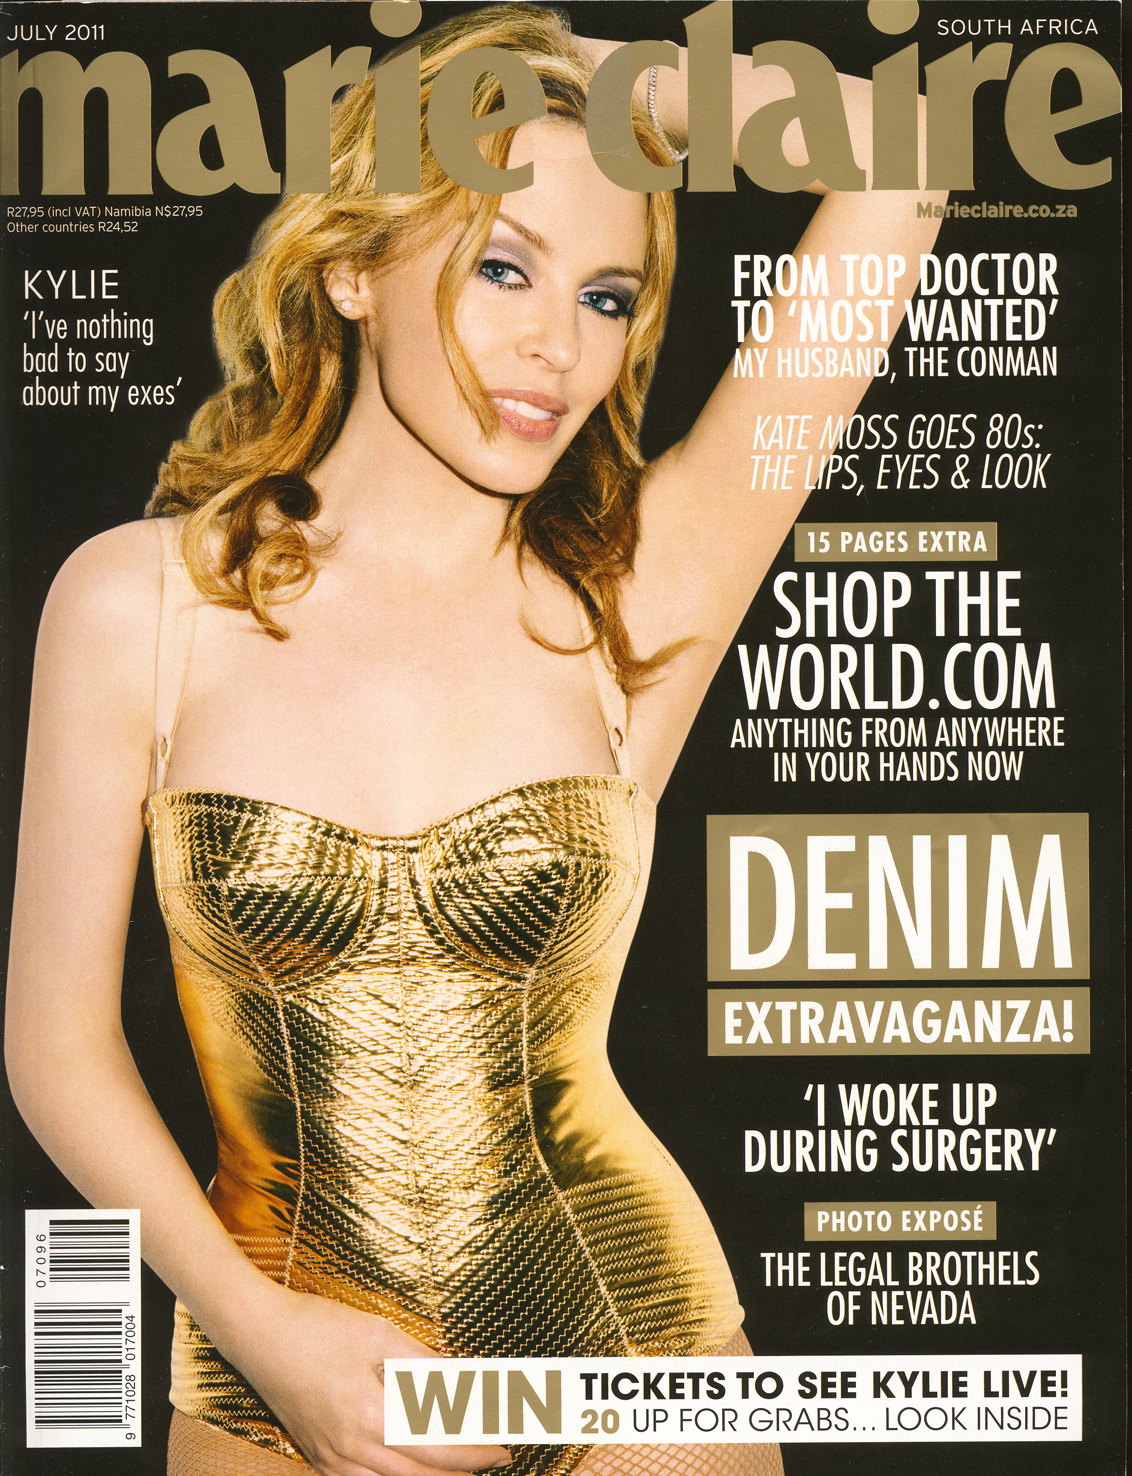 marie claire south africa july 2011.jpg